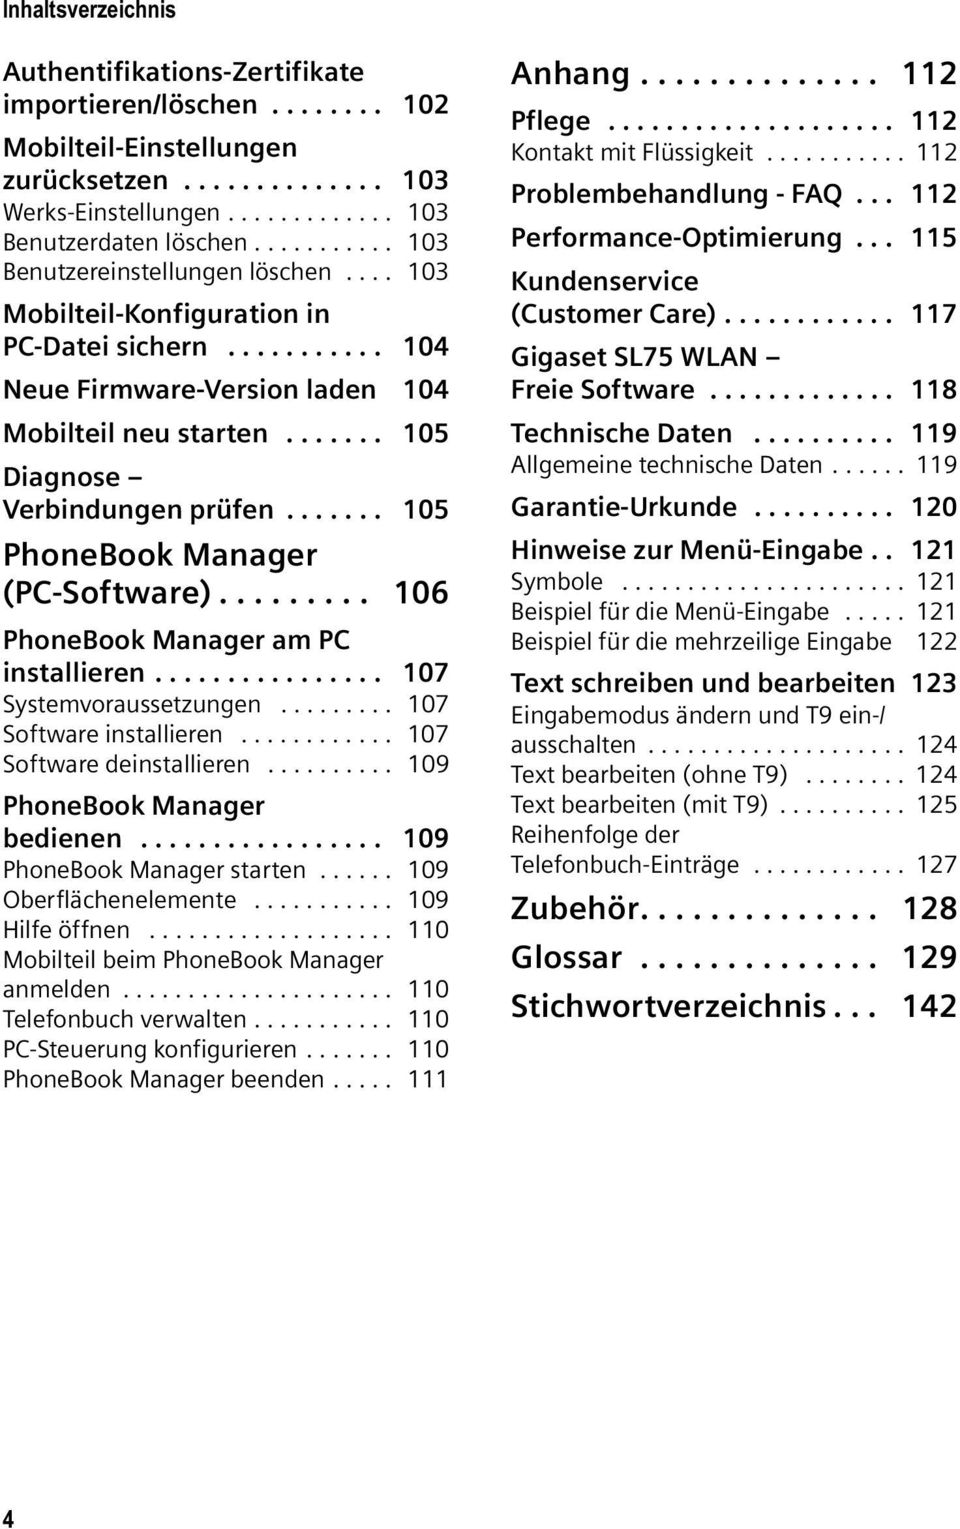 ...... 105 PhoneBook Manager (PC-Software)......... 106 PhoneBook Manager am PC installieren................ 107 Systemvoraussetzungen......... 107 Software installieren............ 107 Software deinstallieren.